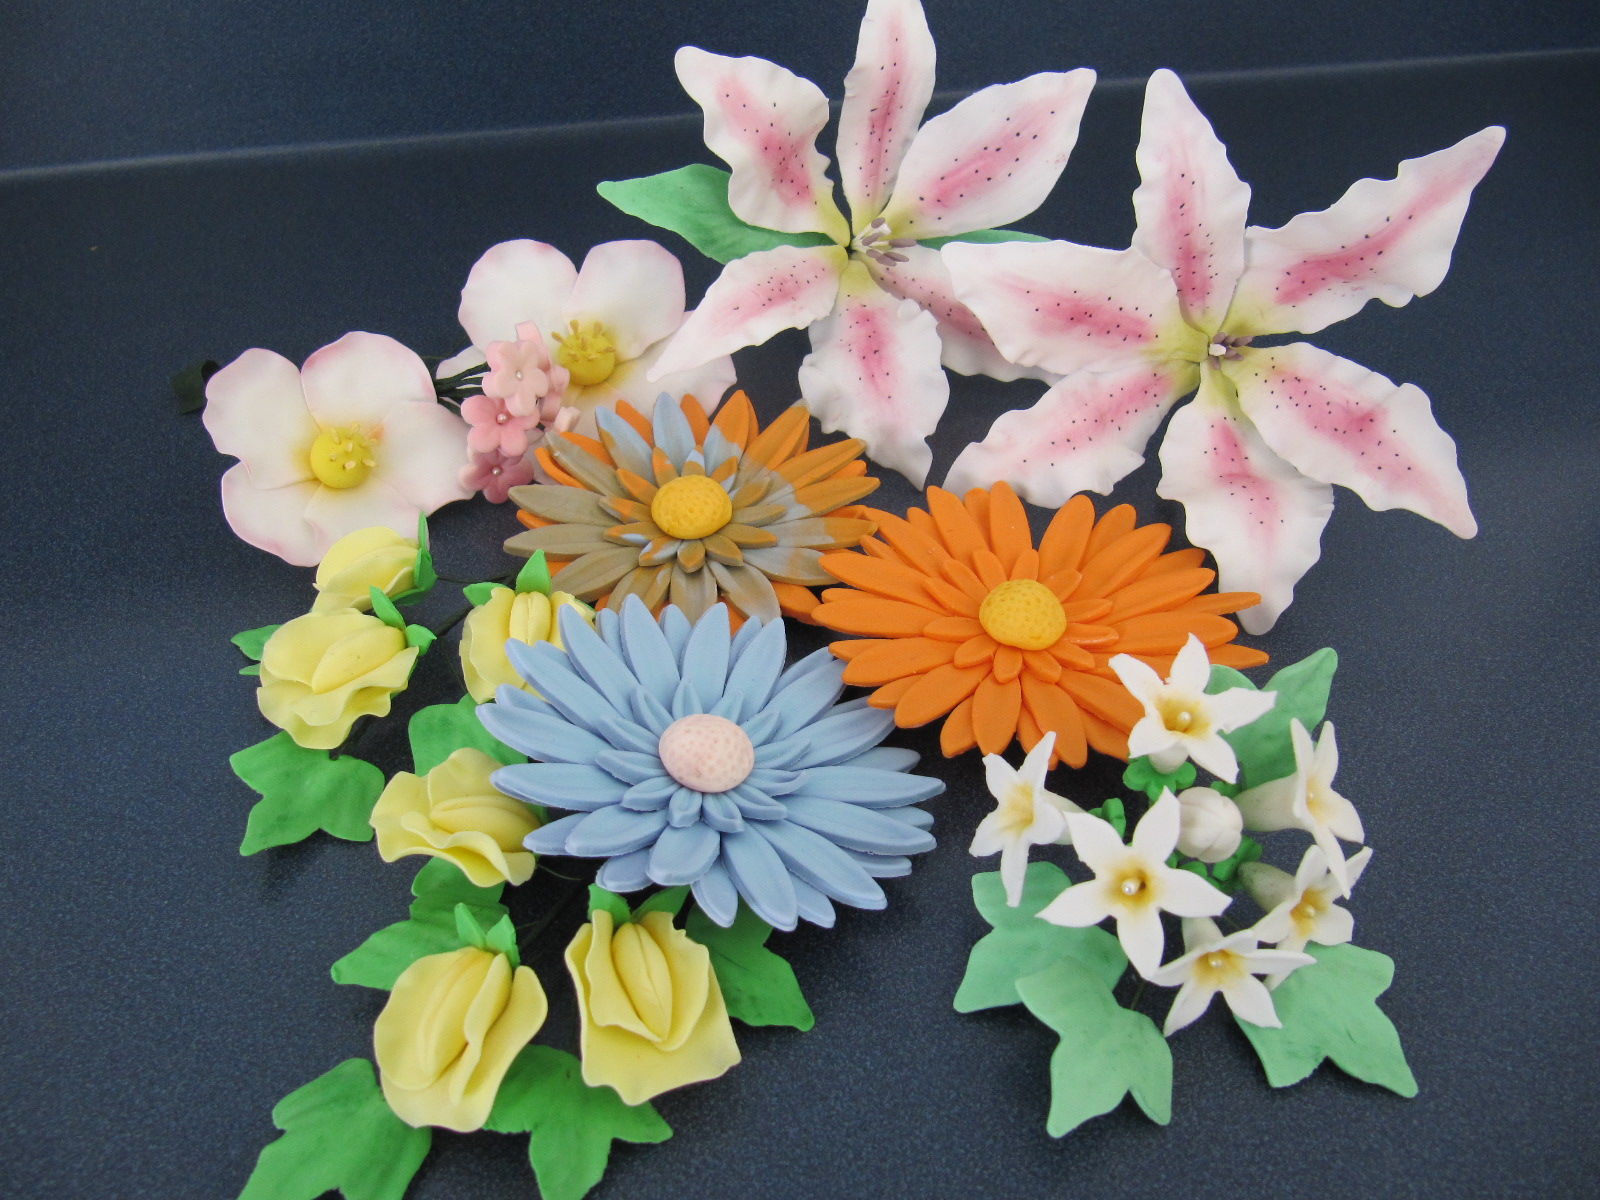 Wilton Cake Decorating Making Flowers : Wilton Advanced Gum Paste Flowers   Erica s Edibles